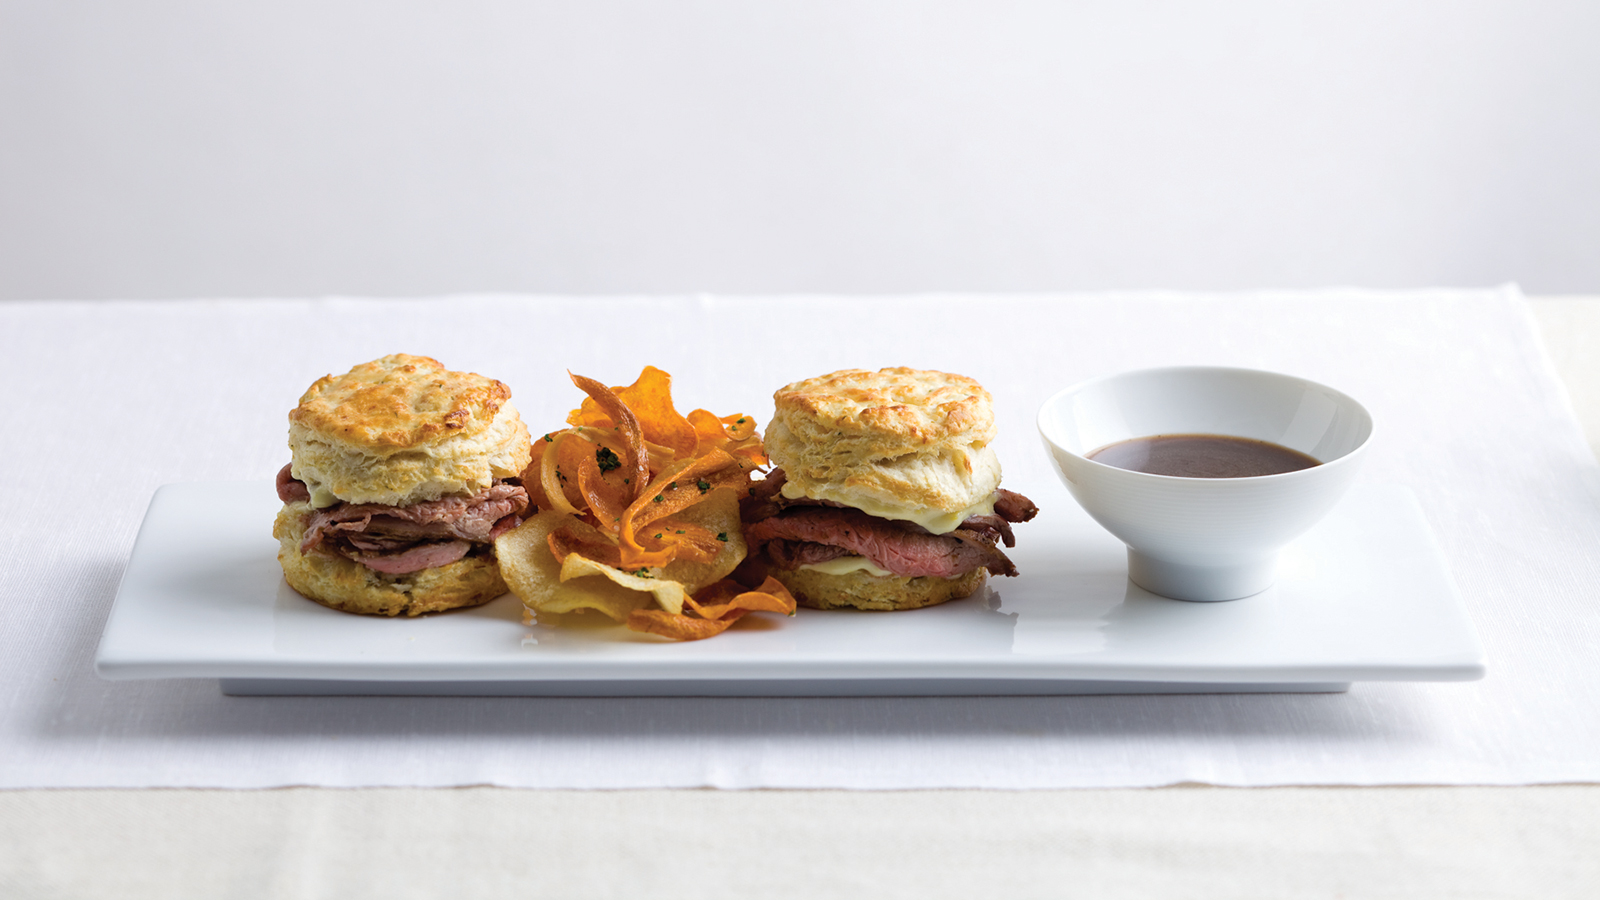 Colorado lamb dip sandwich with goat cheese rosemary for Lamb jus